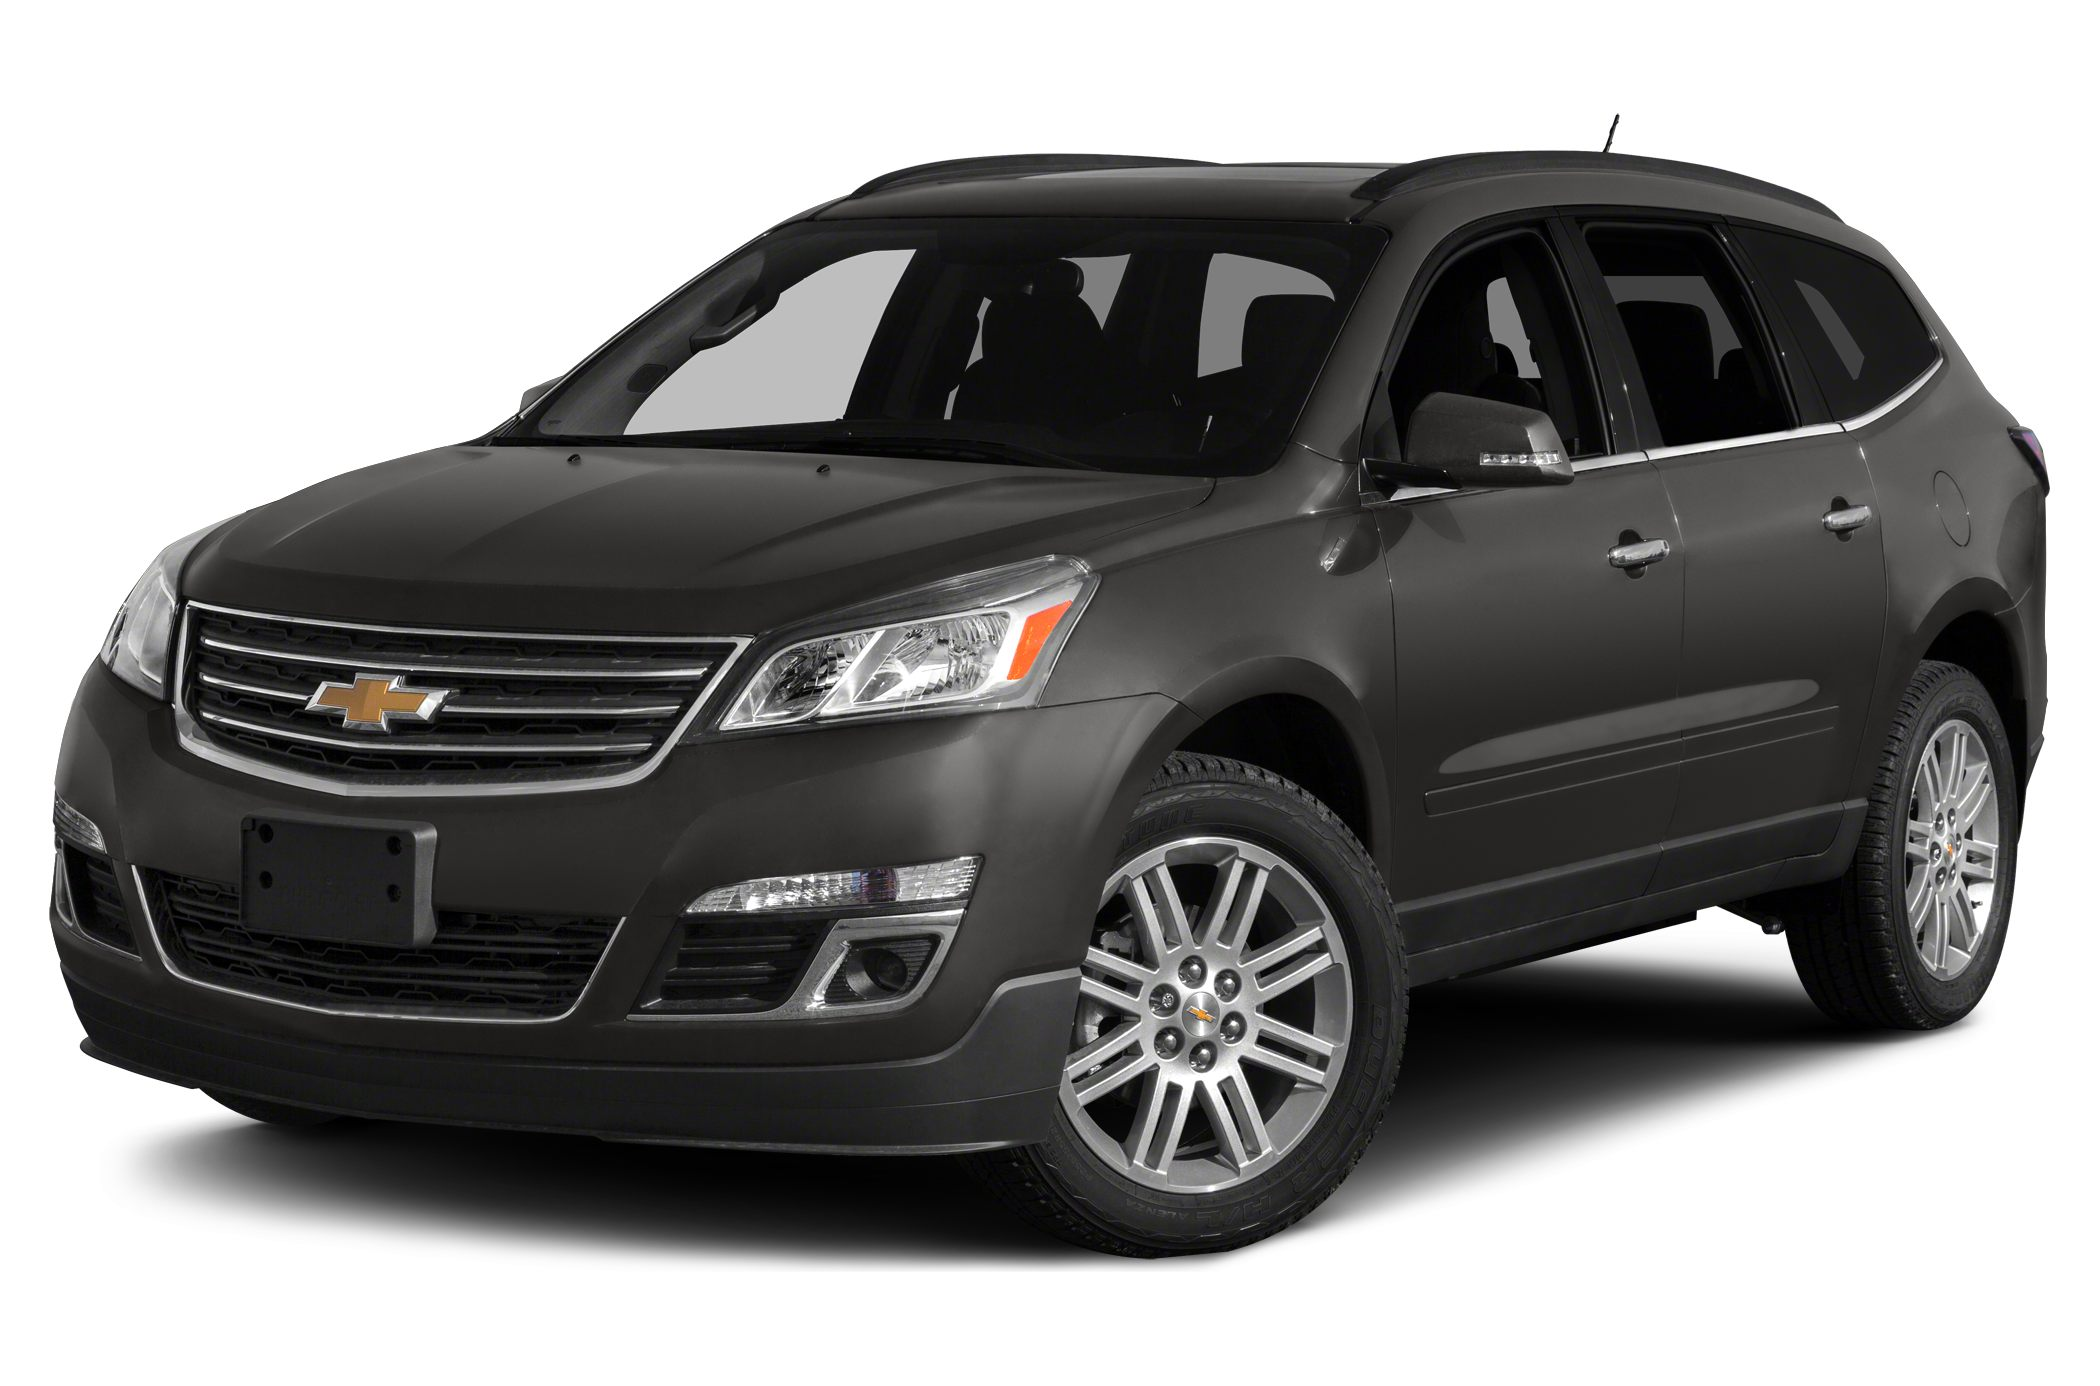 2015 Chevrolet Traverse 1LT SUV for sale in Andover for $38,735 with 0 miles